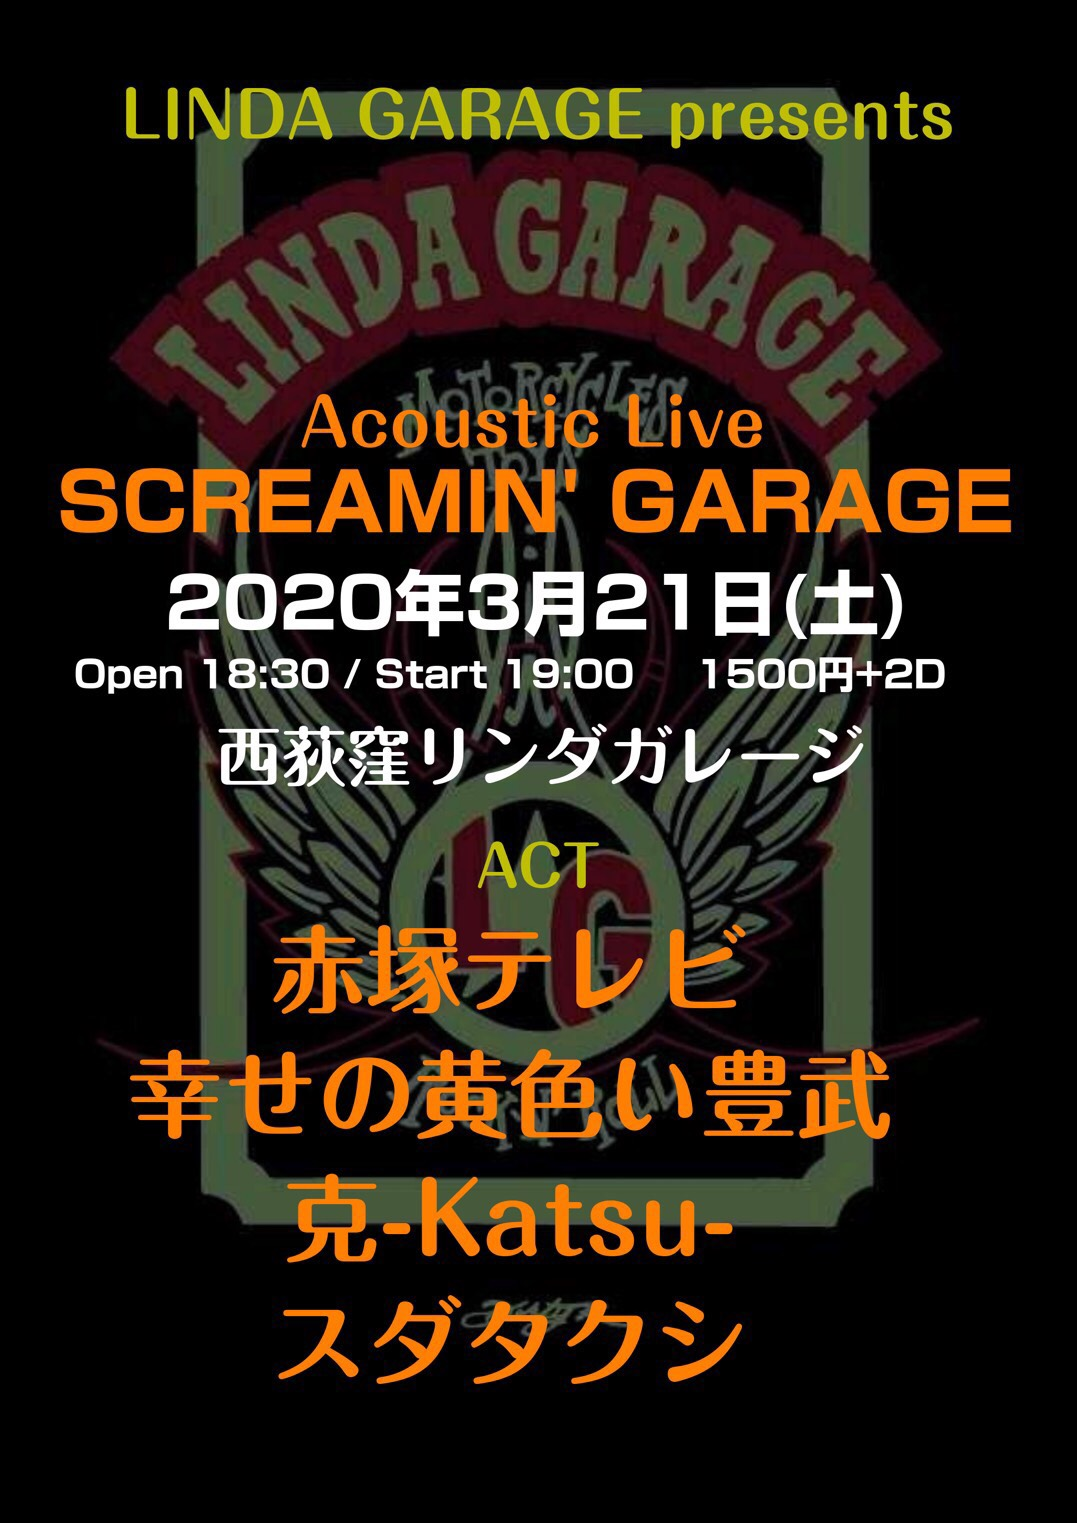 LINDA GARAGE presents SCREAMIN' GARAGEの写真